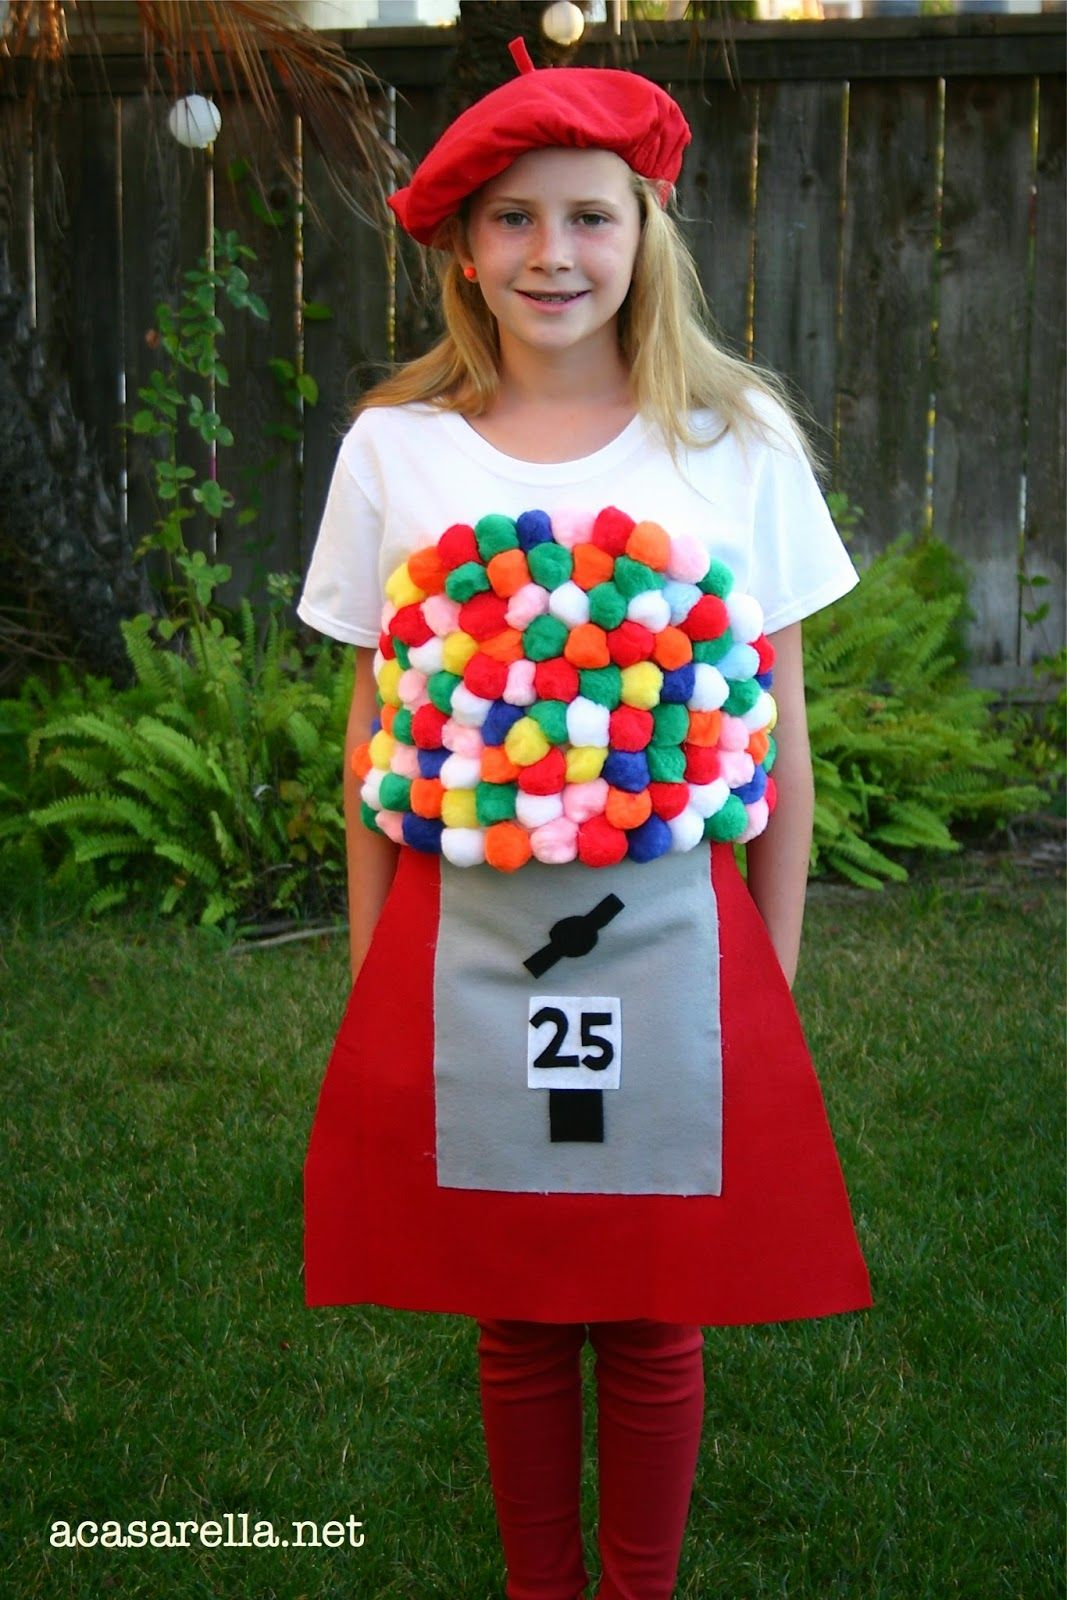 'A Casarella Gumball Machine Halloween Costume